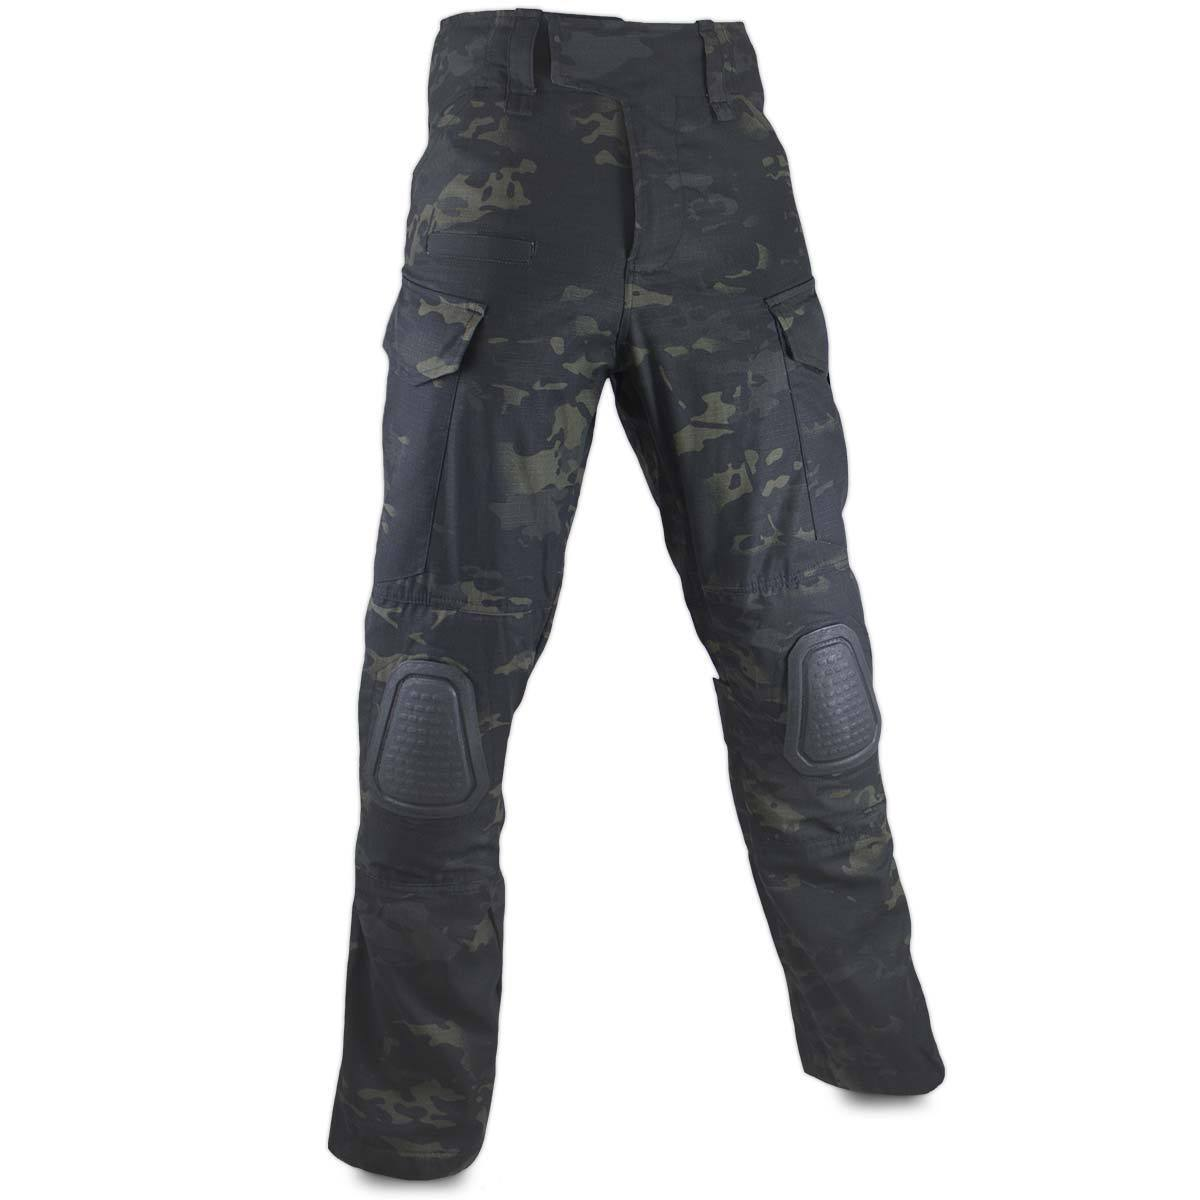 Bulldog Rogue MK3 Trousers MTC Night | Bulldog Tactical Gear